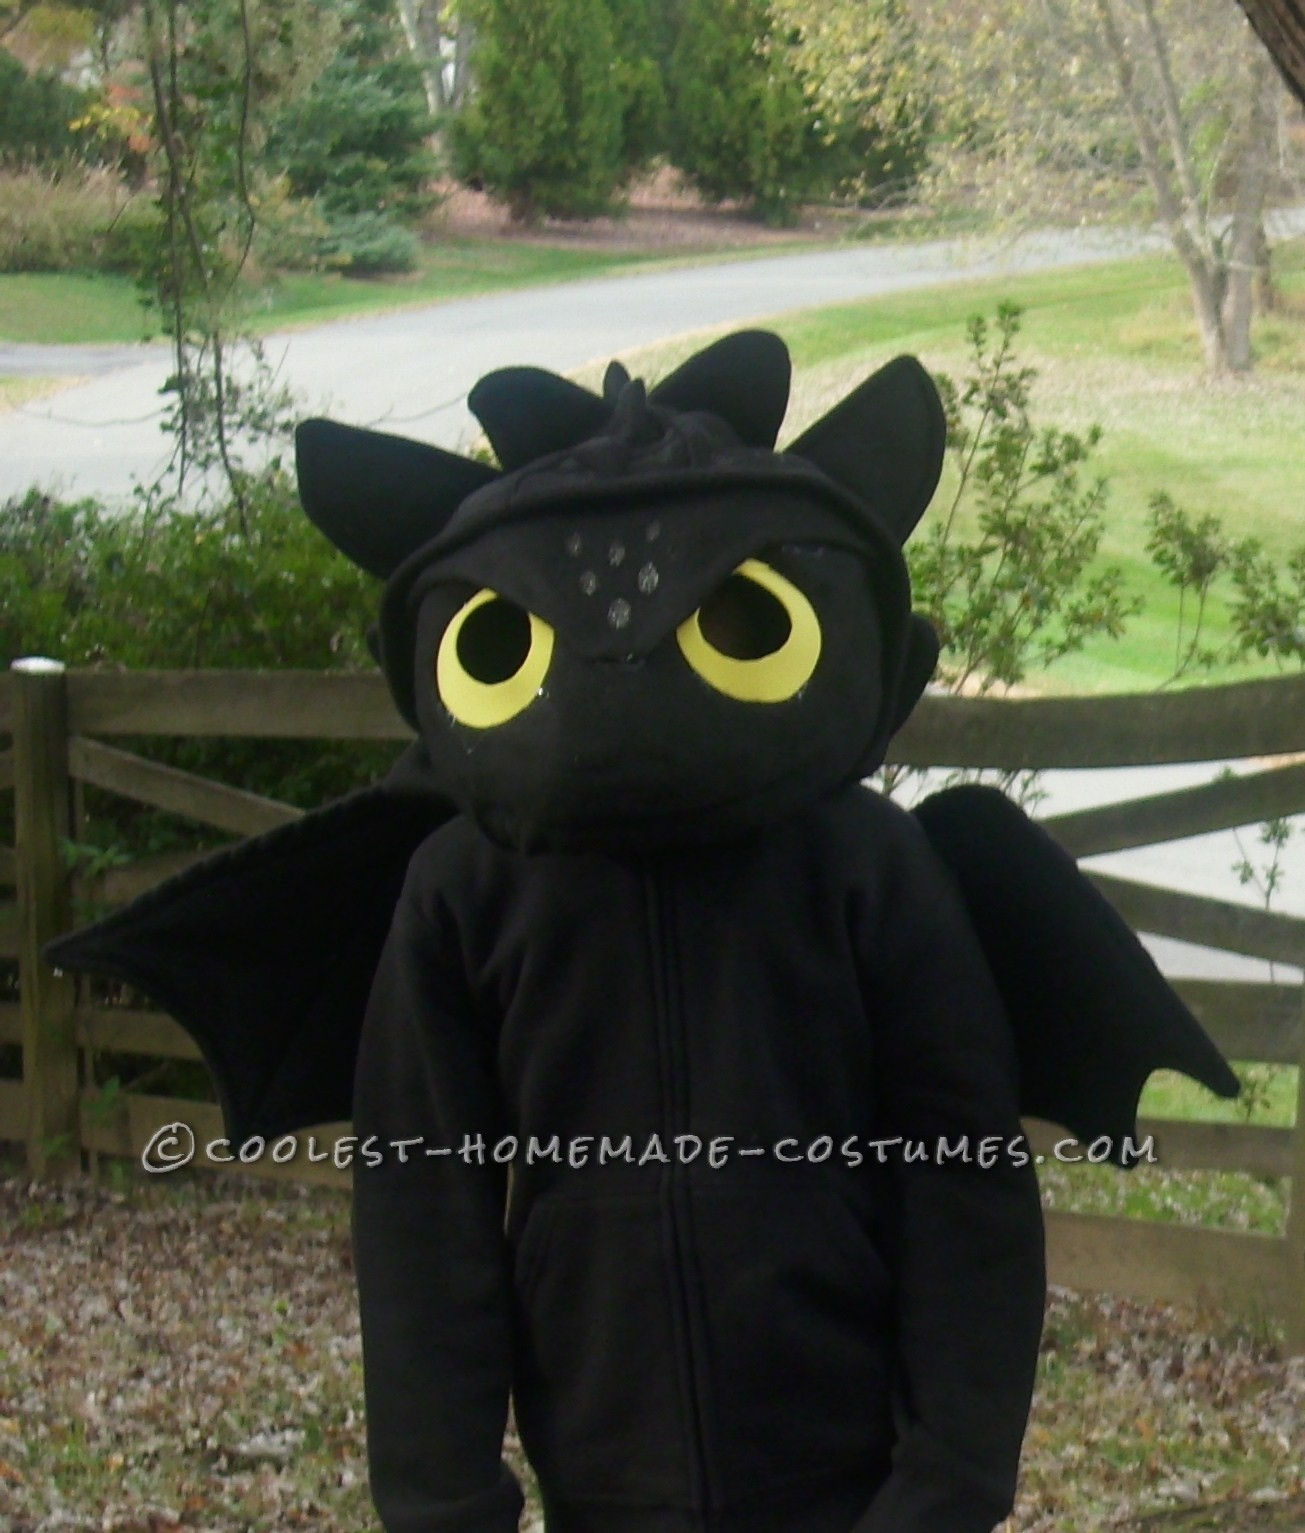 How to Train Your Dragon Homemade Toothless Costume